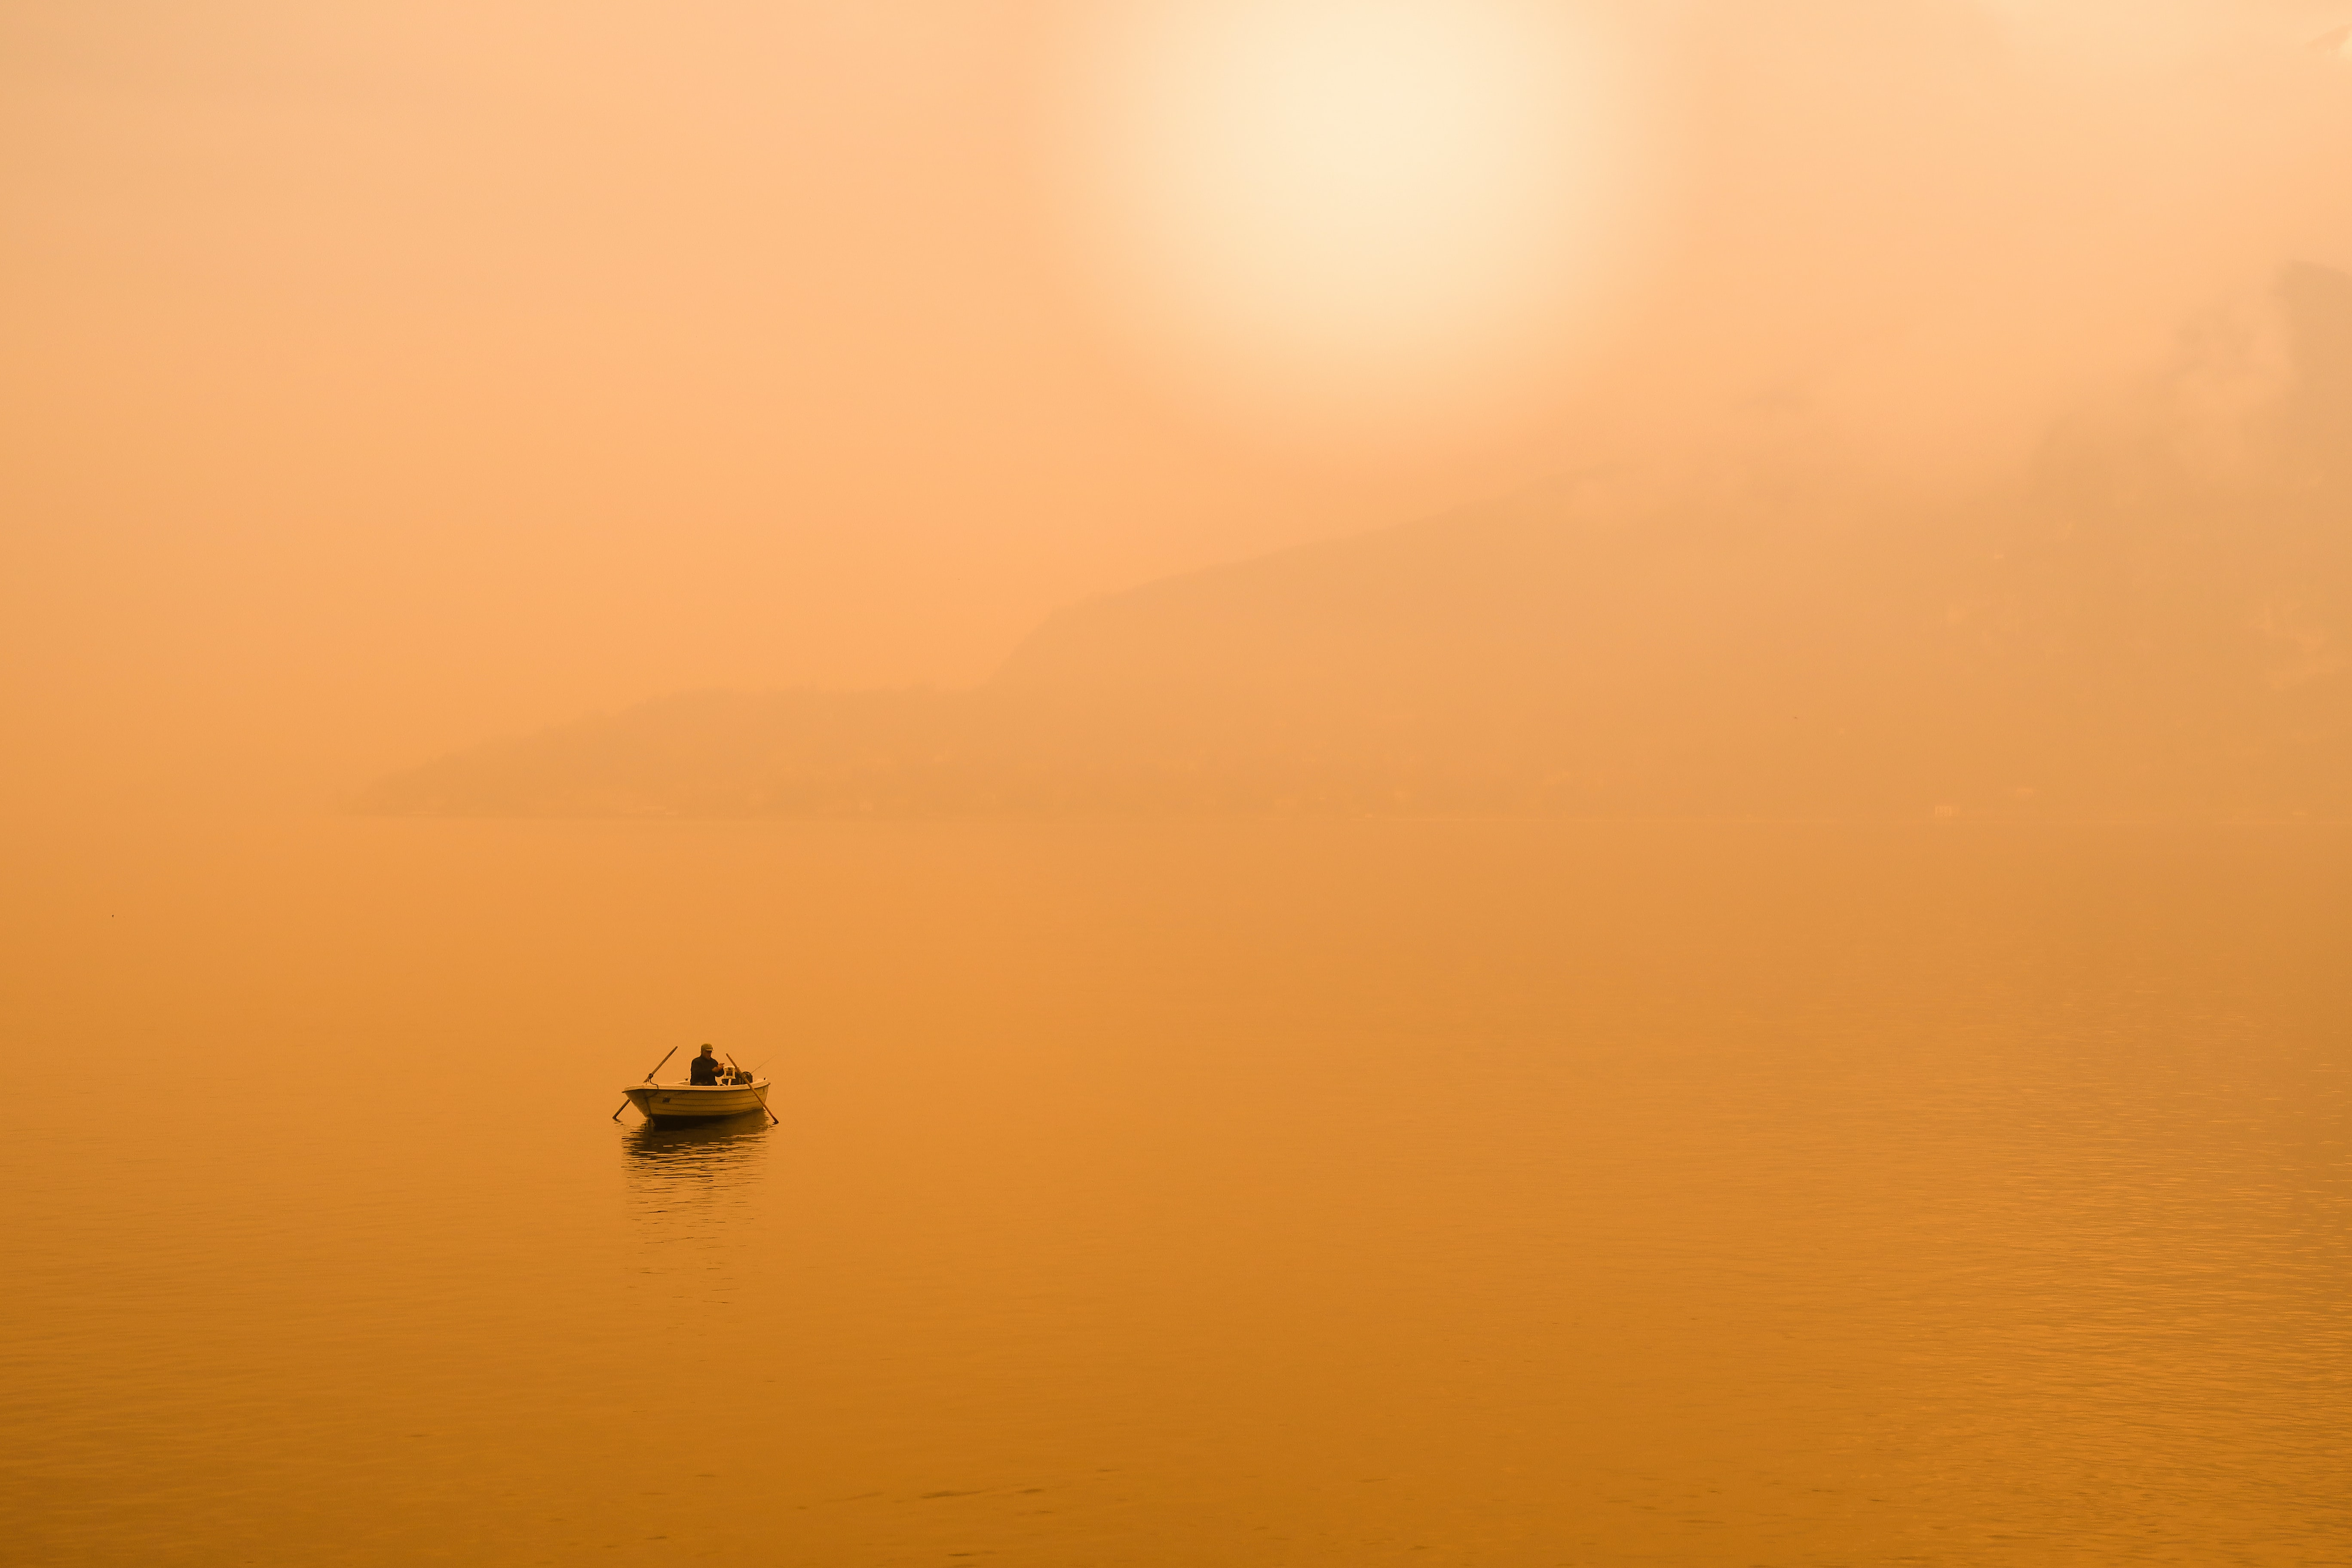 silhouette photography of person in gray sailing boat in the middle of body of water